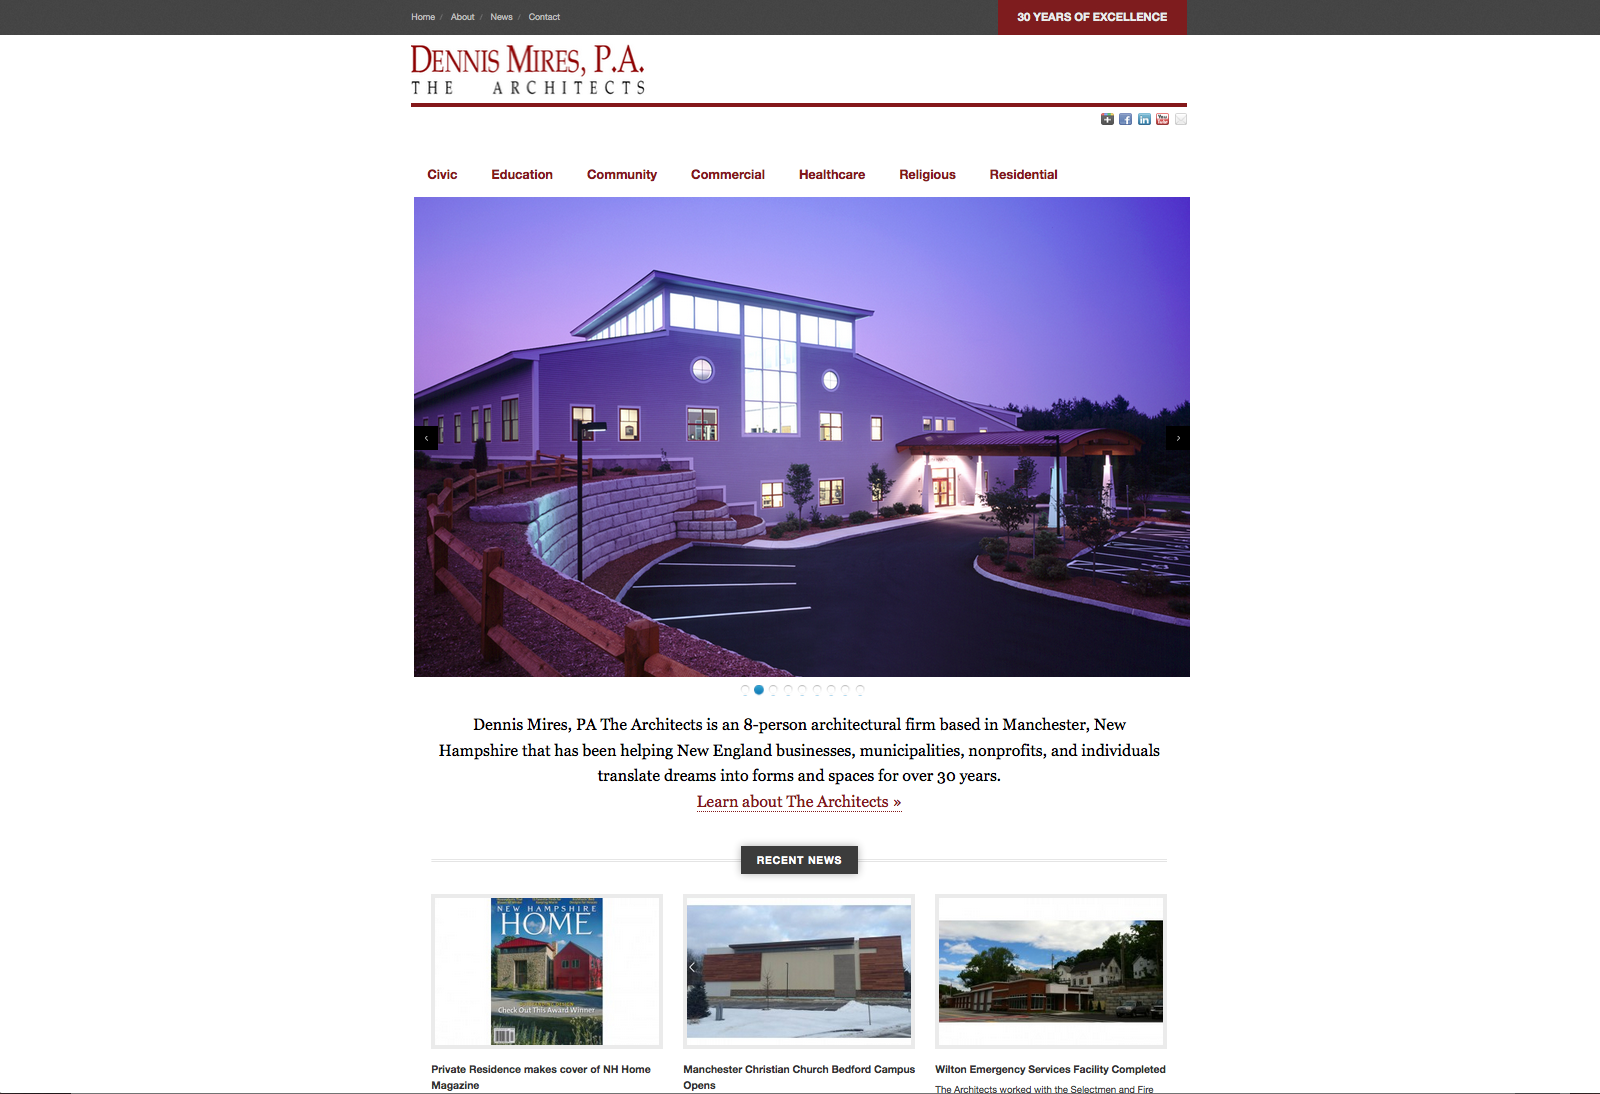 Dennis Mires P.A. The Architects